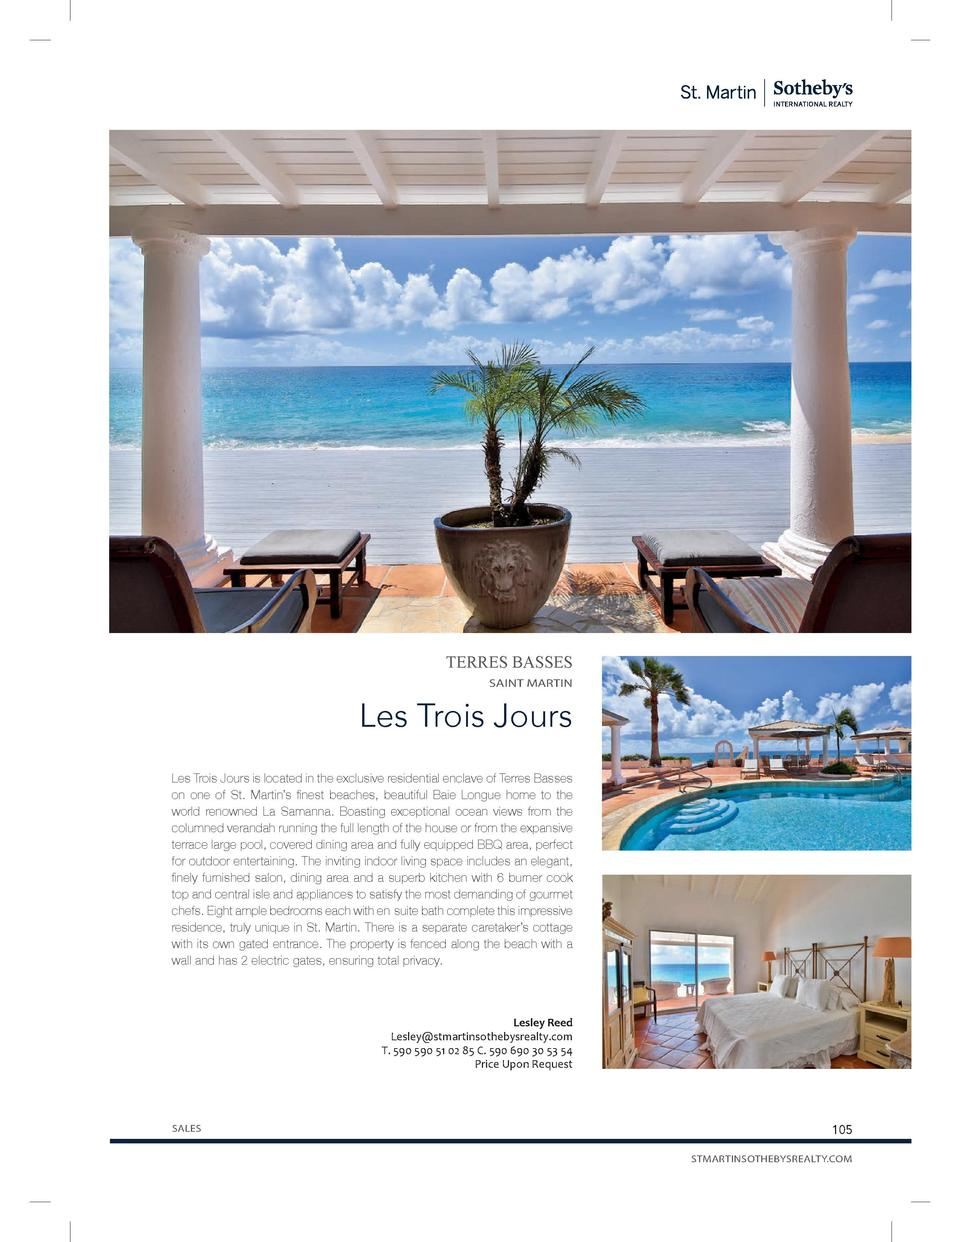 TERRES BASSES SAINT MARTIN  Les Trois Jours Les Trois Jours is located in the exclusive residential enclave of Terres Bass...